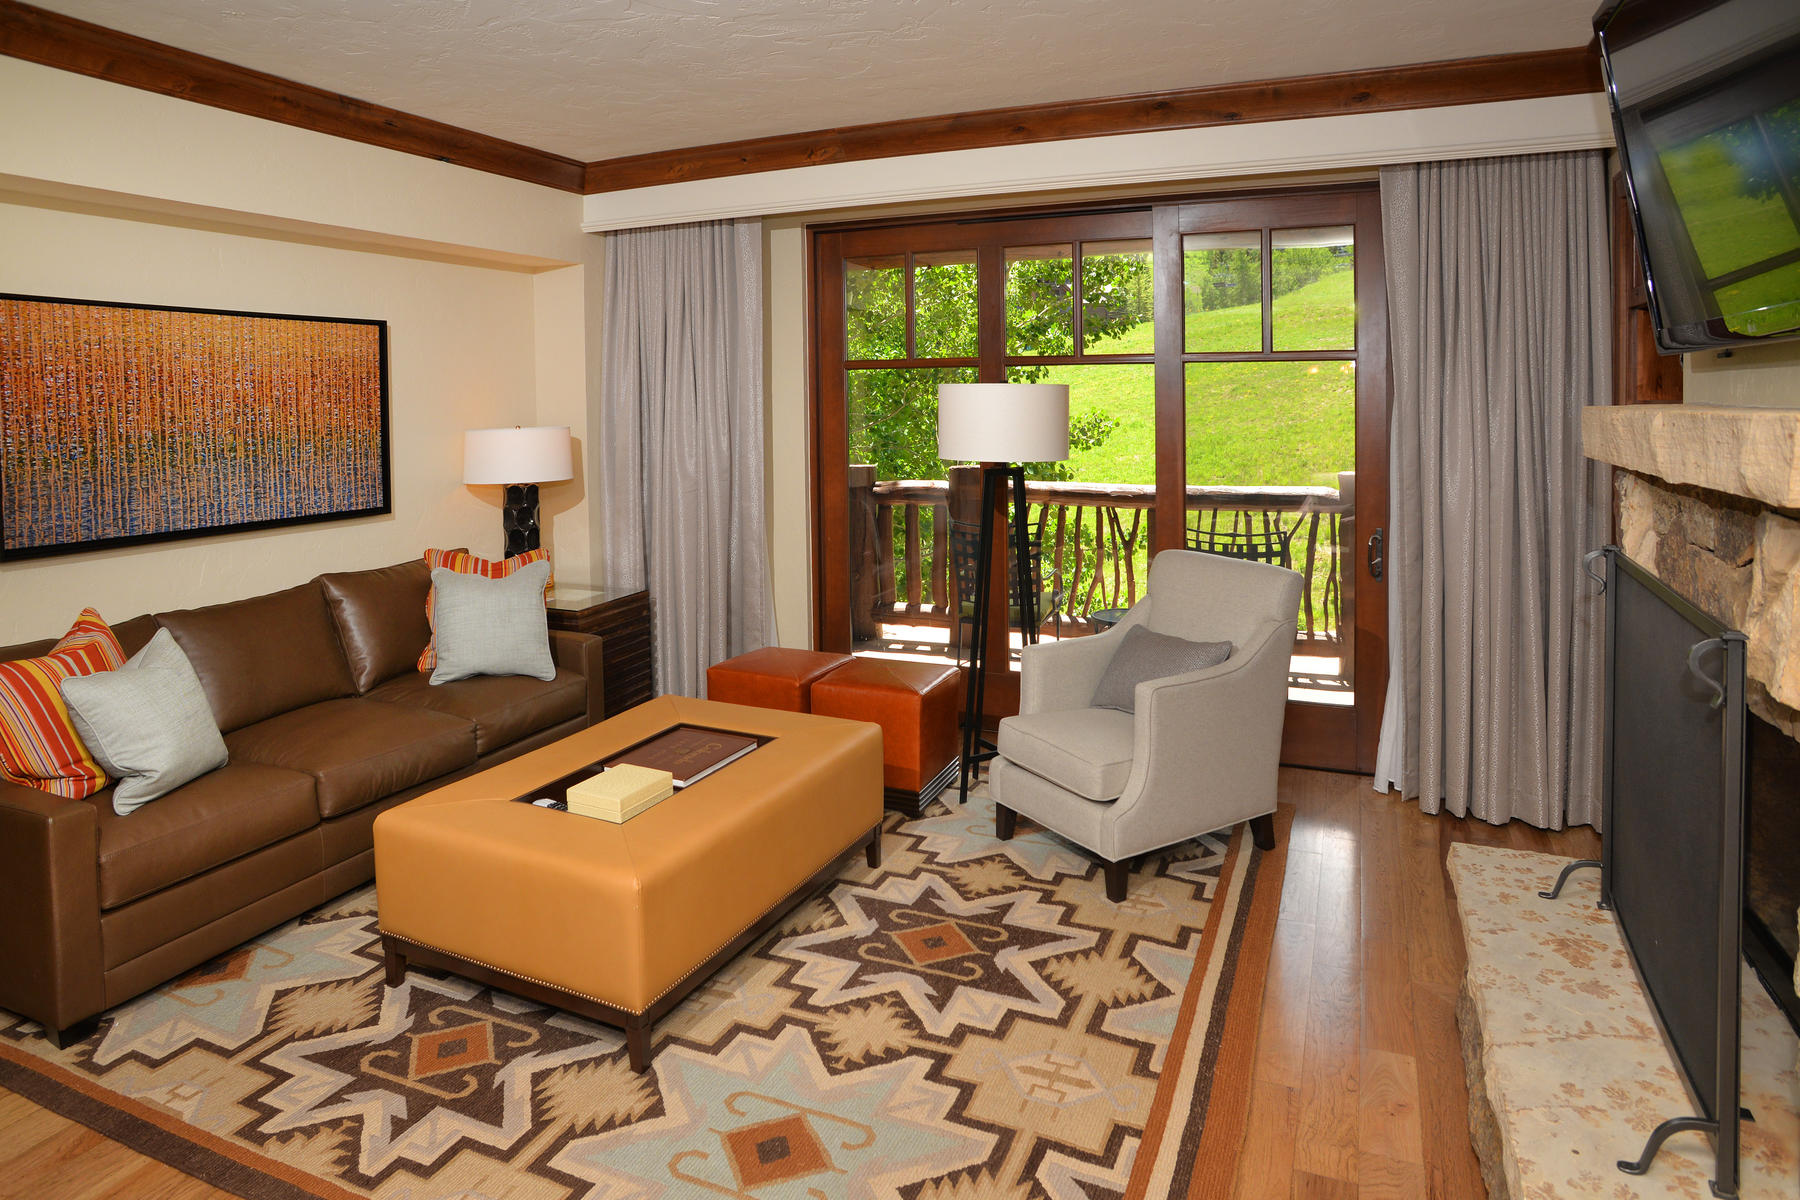 Fractional Ownership for Active at Timbers Bachelor Gulch 100 Bachelor Ridge #3609-08 Beaver Creek, Colorado 81620 United States